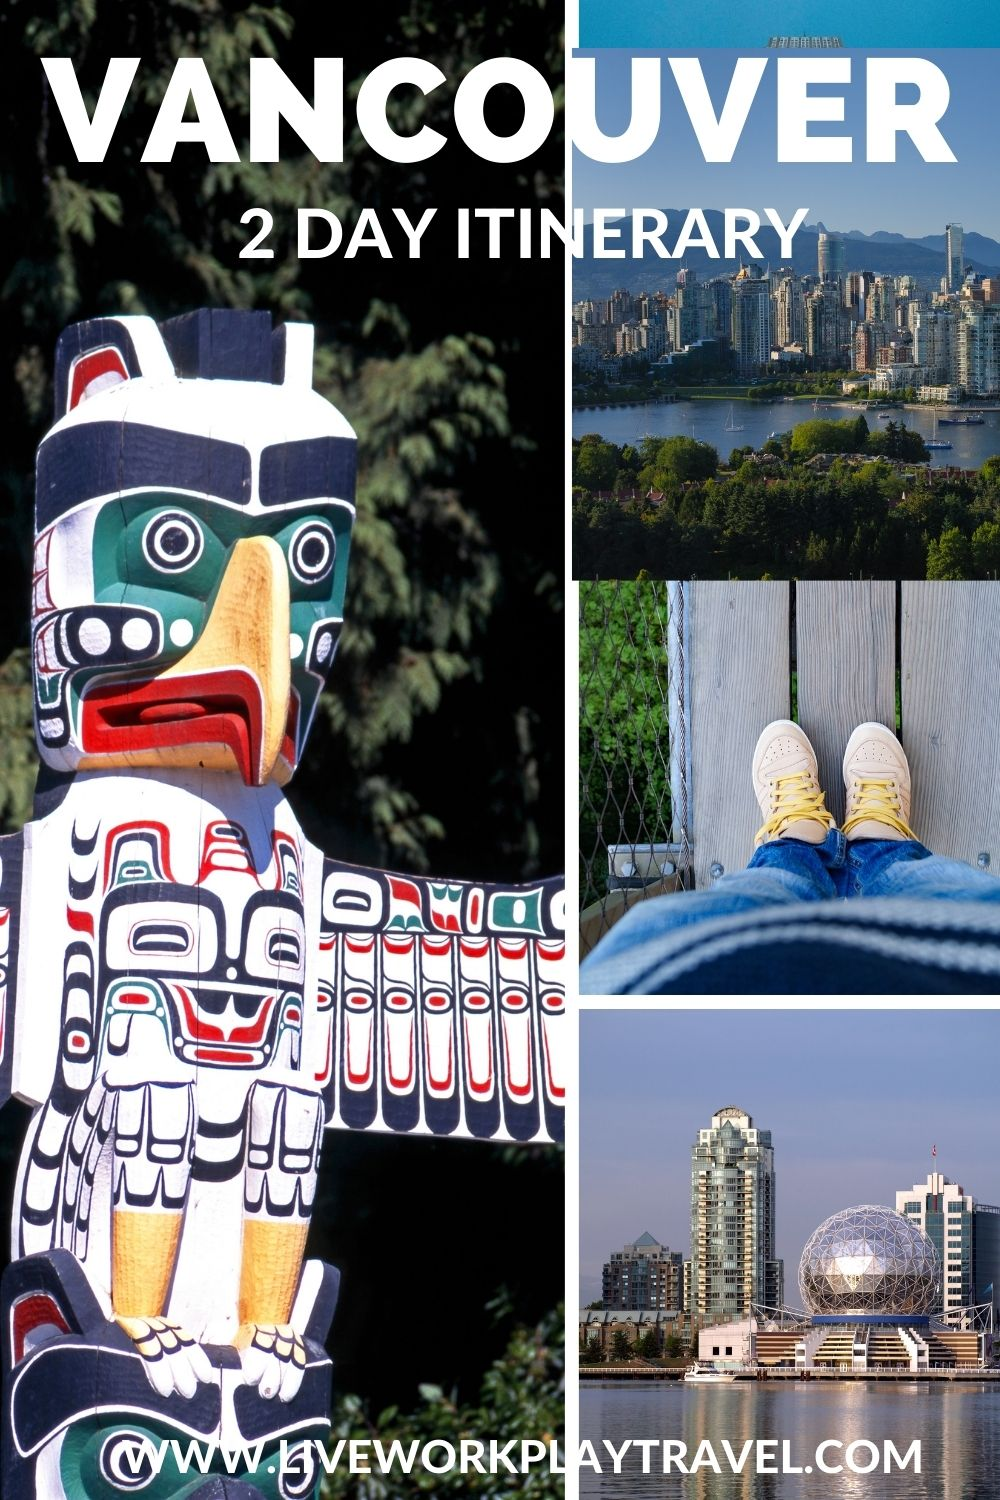 Vancouver Has Lots To See. Totem Poles In Stanley Park. Capilano Suspension Bridge. Views Over Vancouver City Surrounded By Snow Capped Mountains.